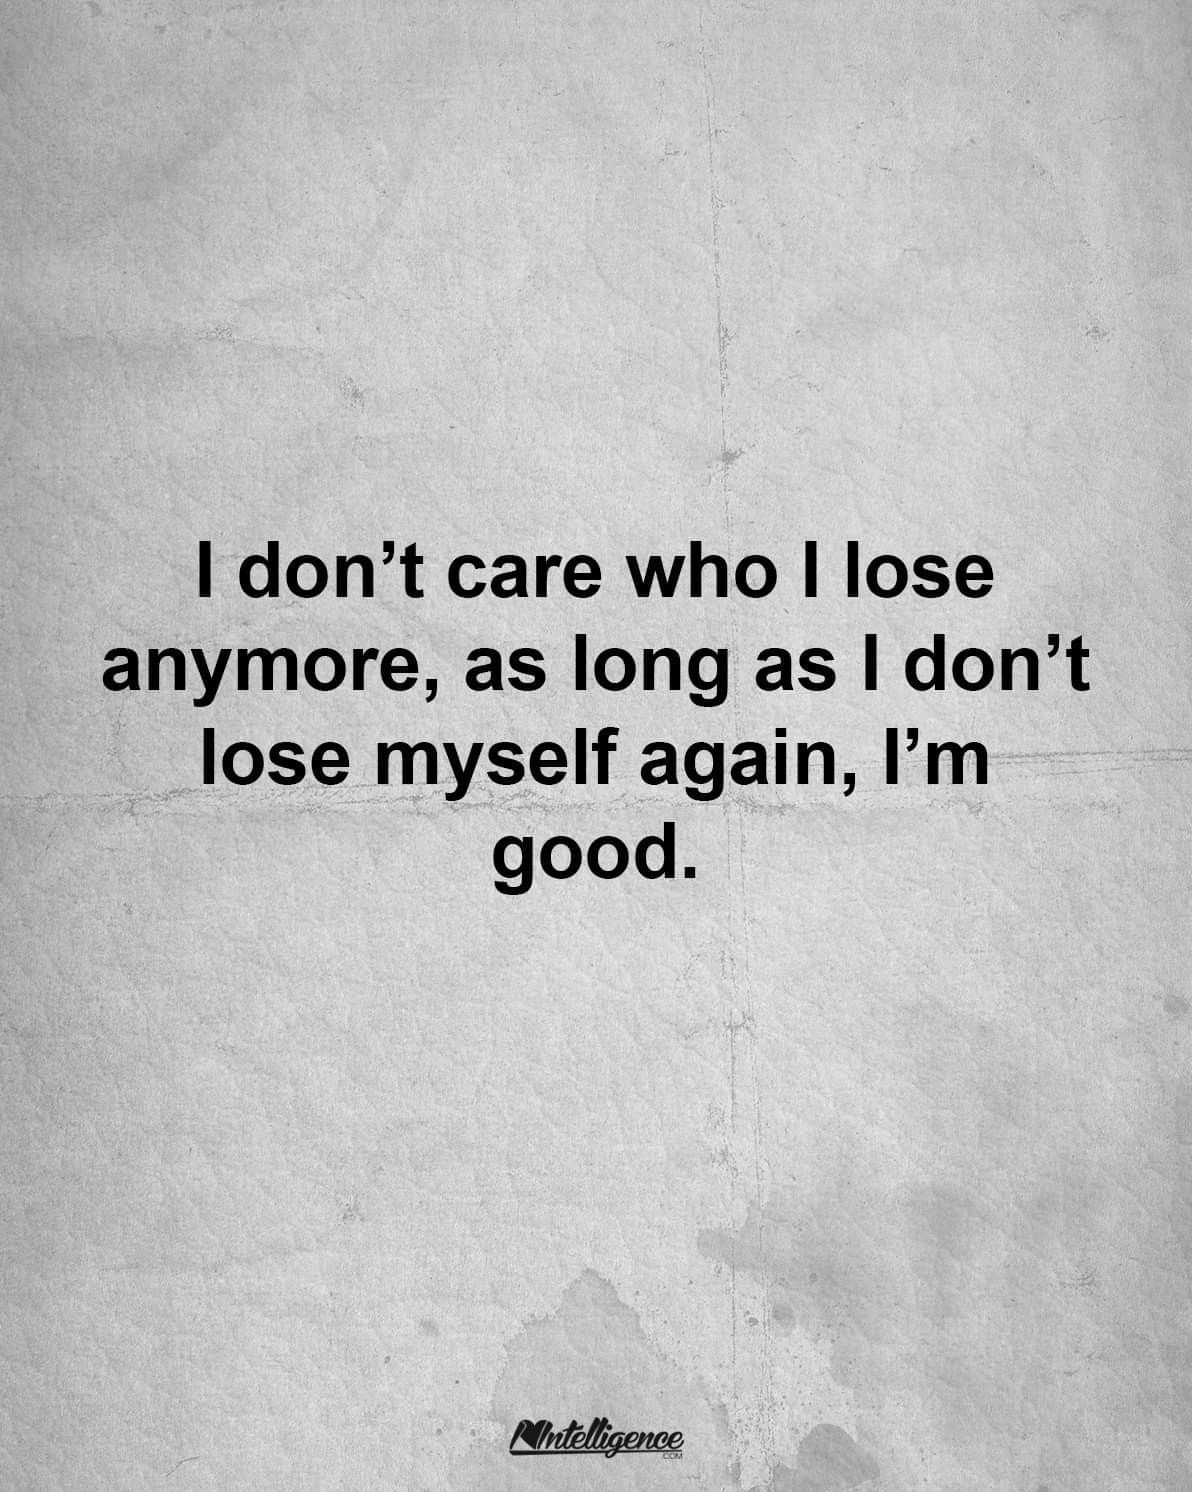 I Will Never Lose Myself Again I M Ok Losing People Friends And Even Family If They Were Mean Lost Myself Quotes Losing Friends Quotes Baby Love Quotes